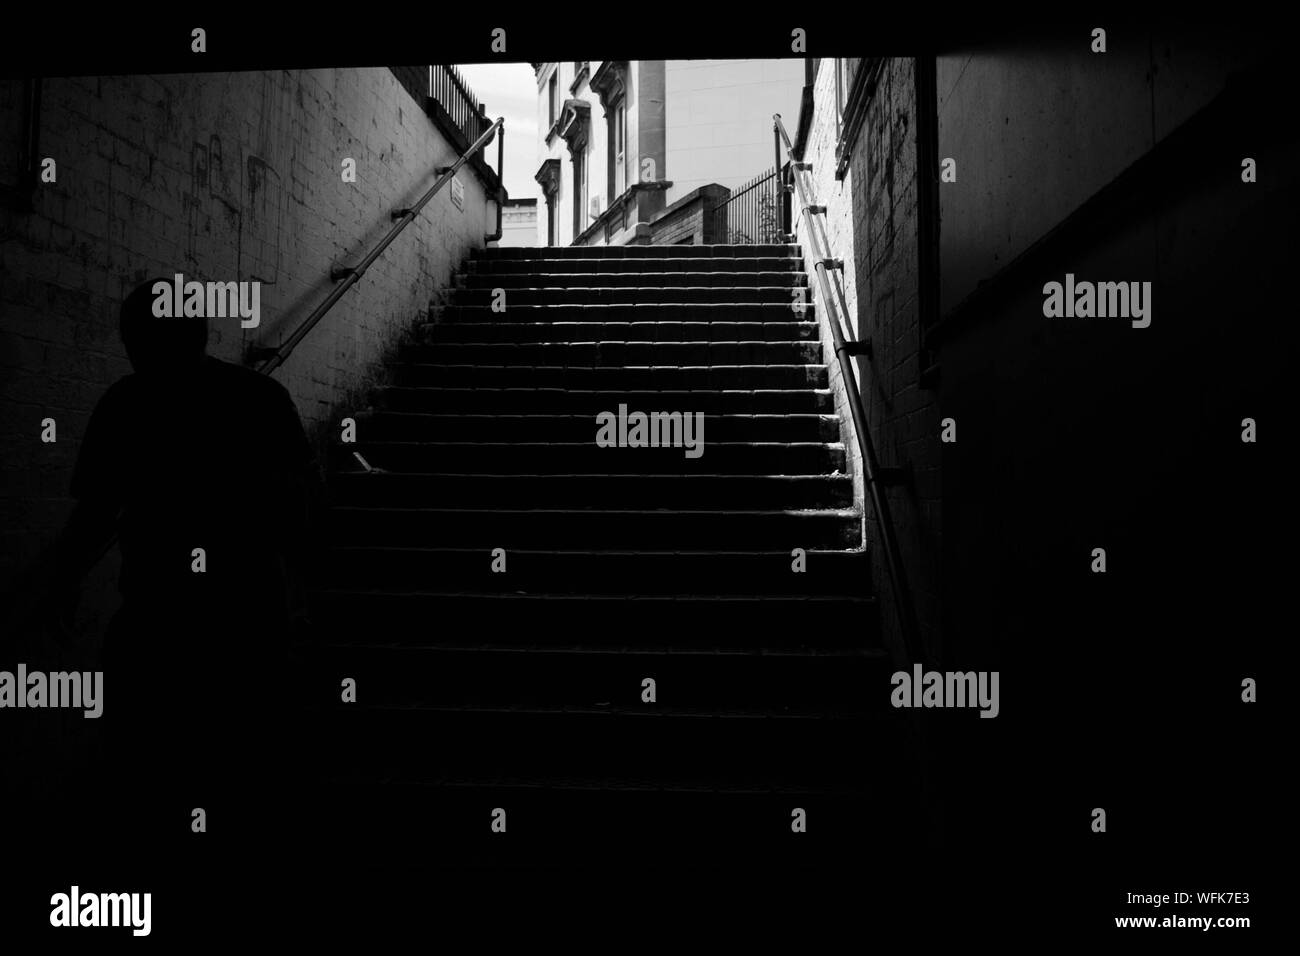 Silhouette Man Walking On Staircase In Basement Stock Photo